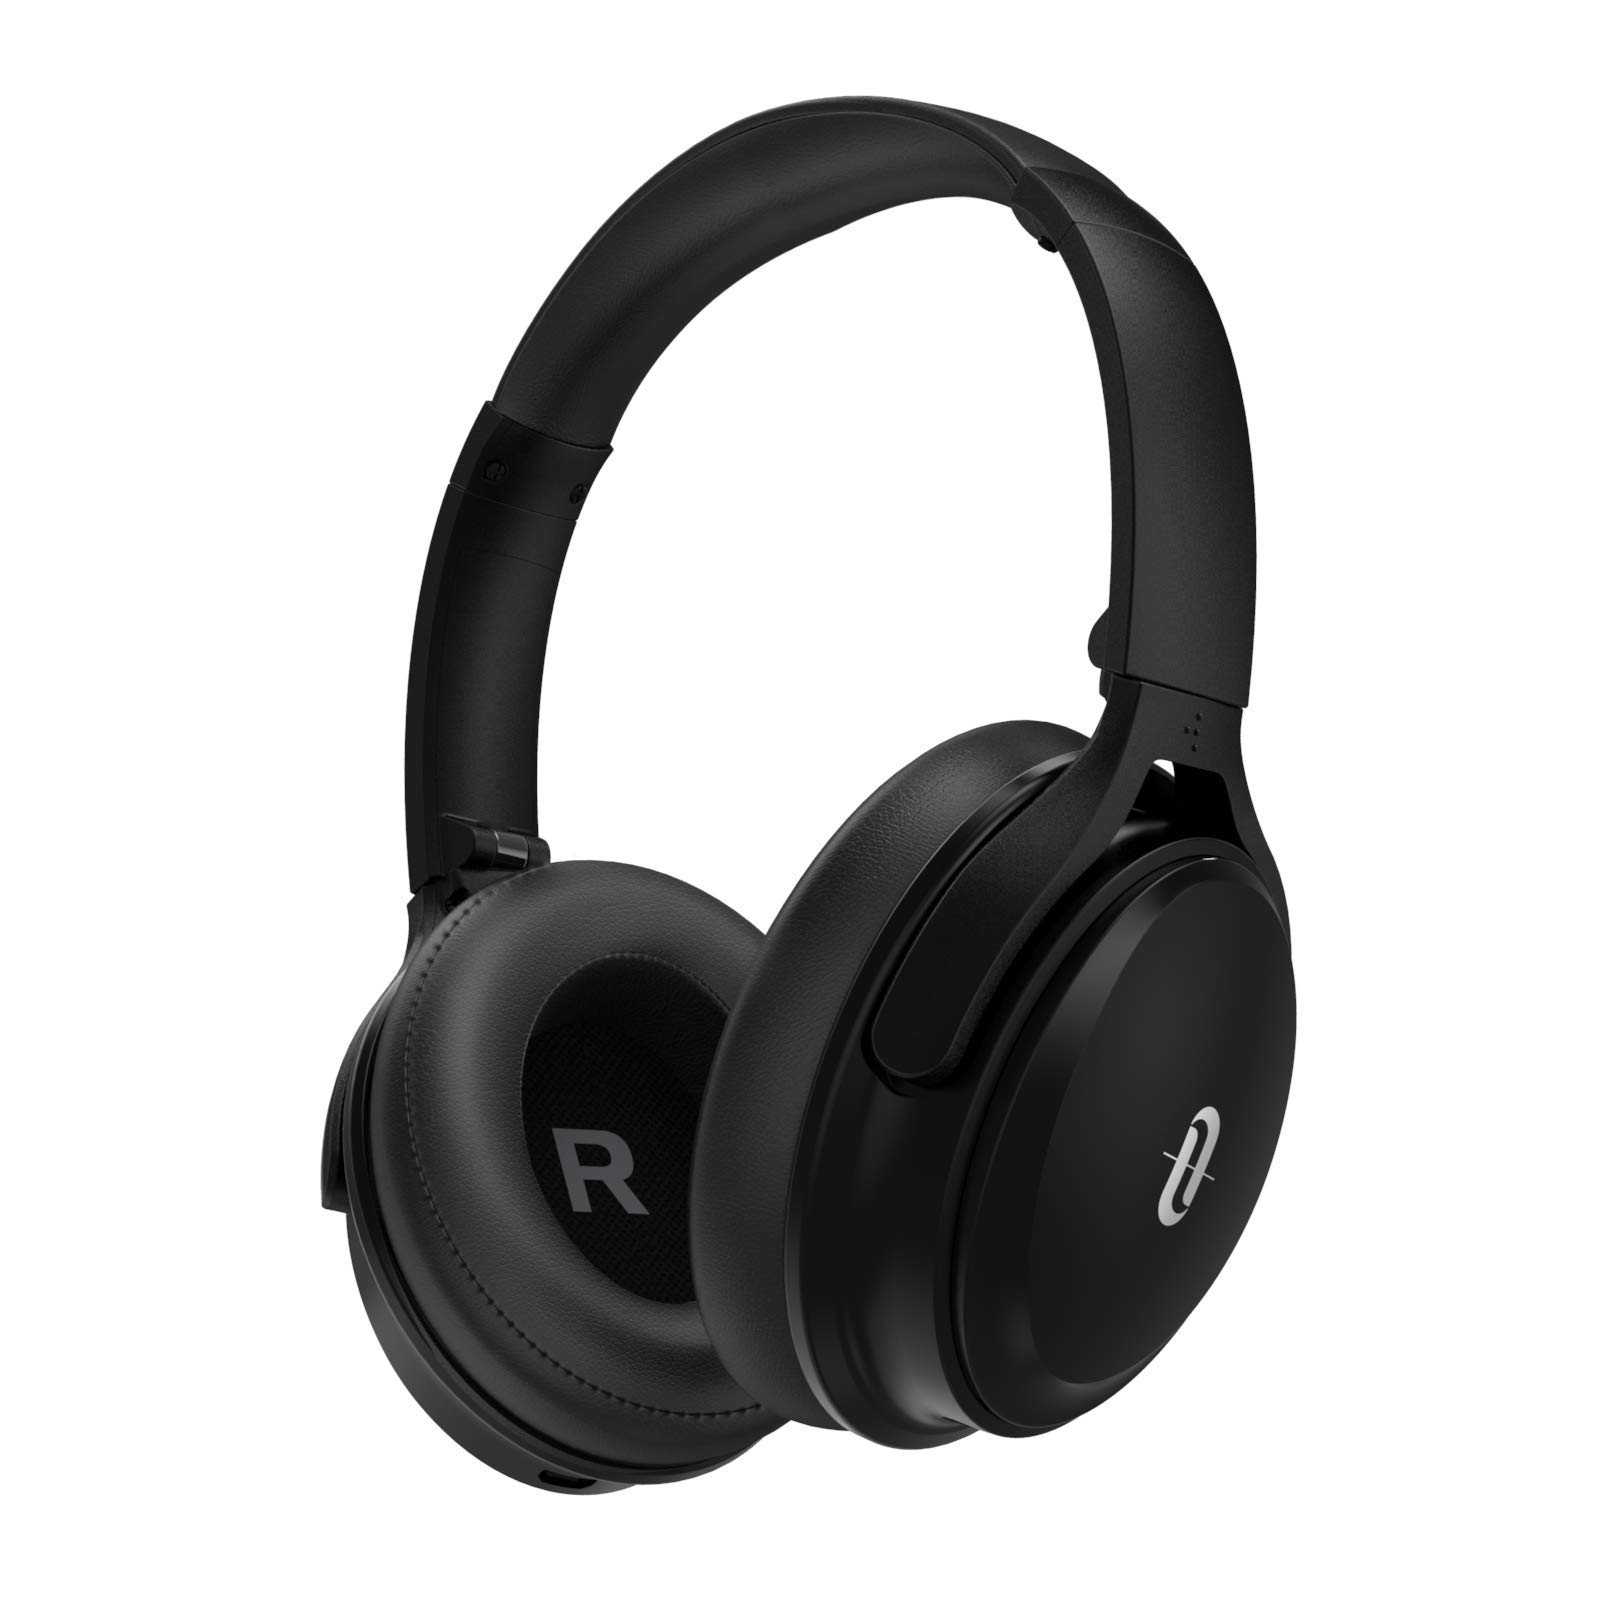 Auriculares TaoTronics Cancelacion de Ruido Activa Bluetooth Over-Ear Inalambrico High Clarity Sound Powerful Bass 30 ho